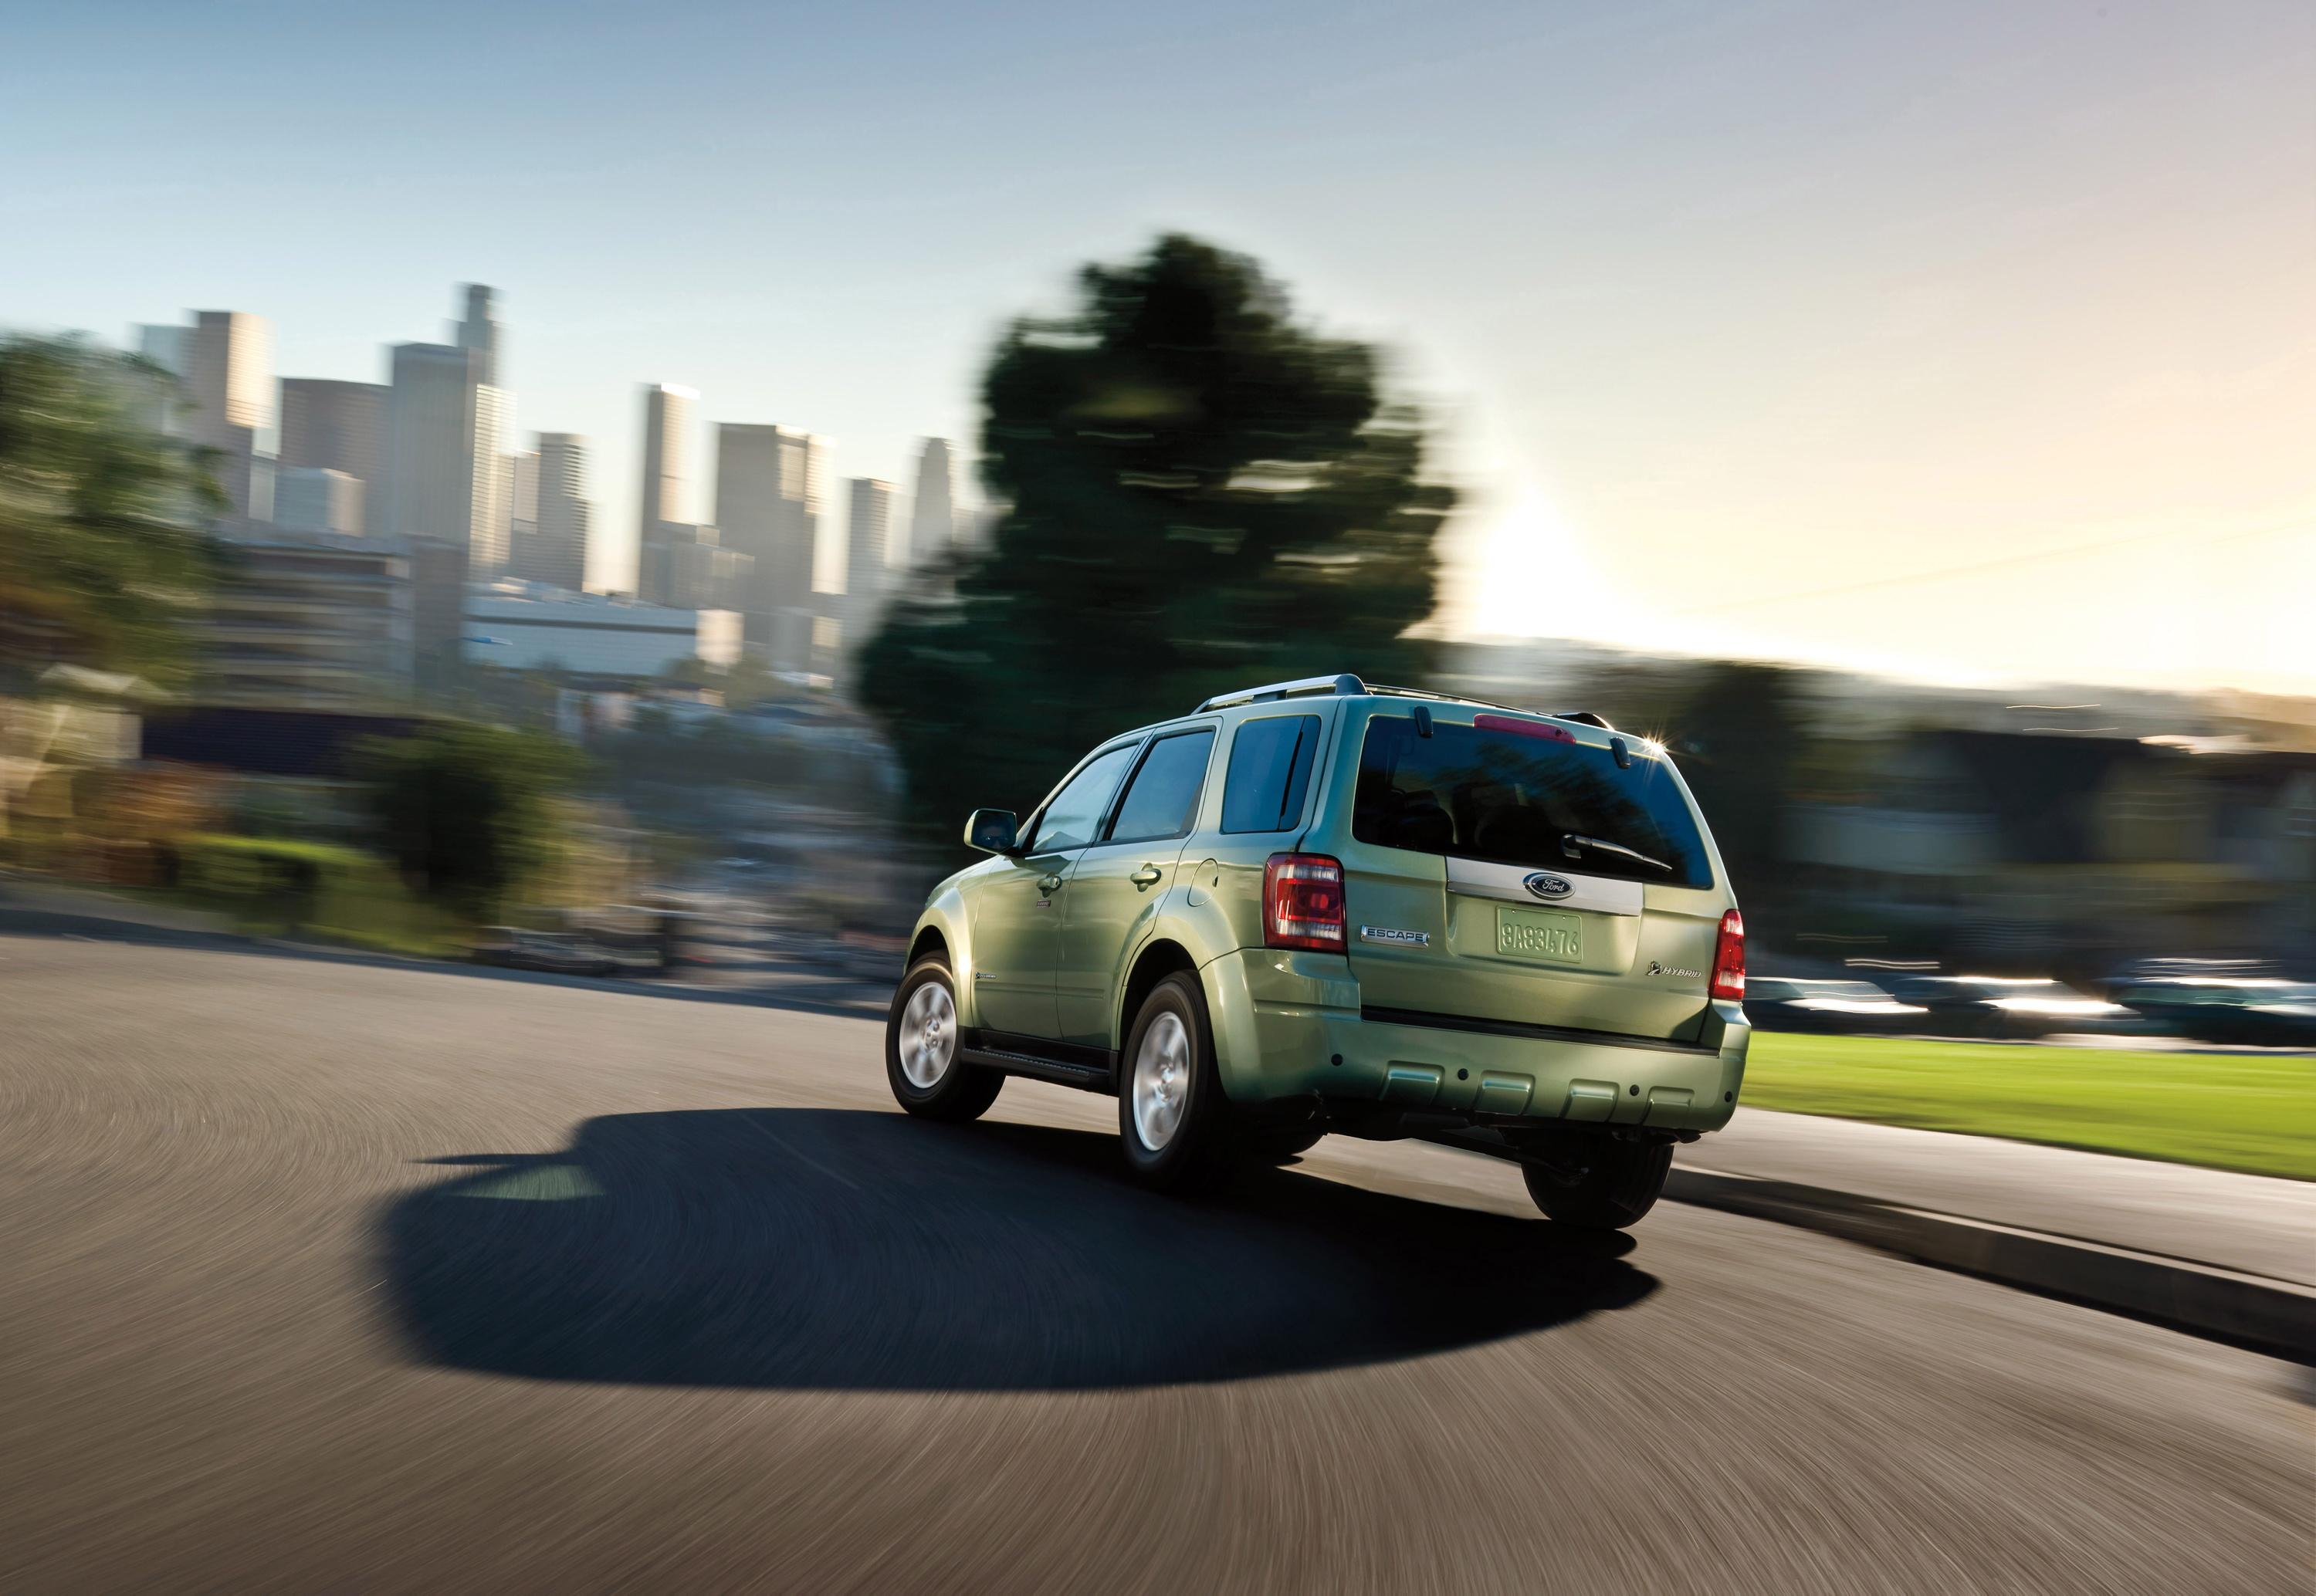 2008 ford escape hybrid recognized among top 10 green cars praised